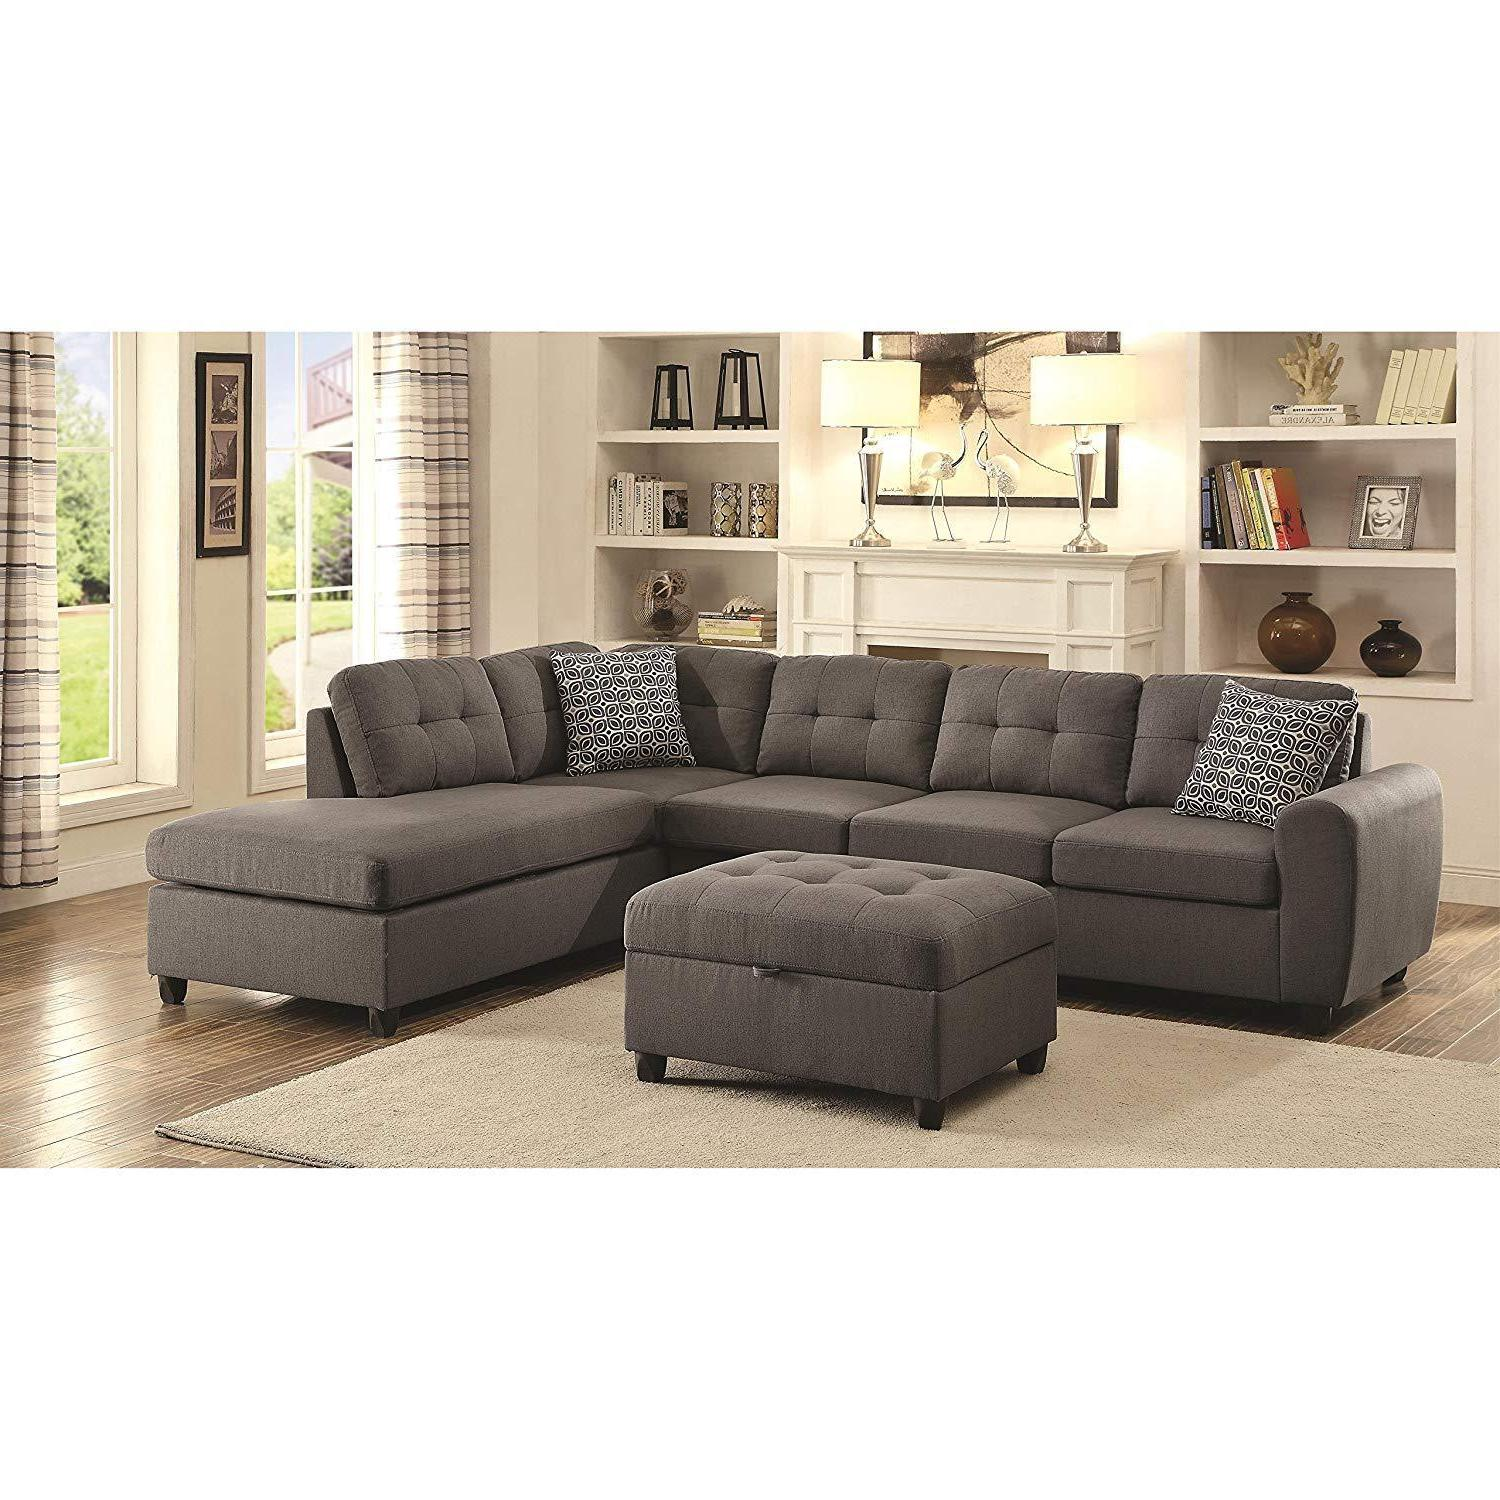 coaster home furnishings 500413 living room sectional